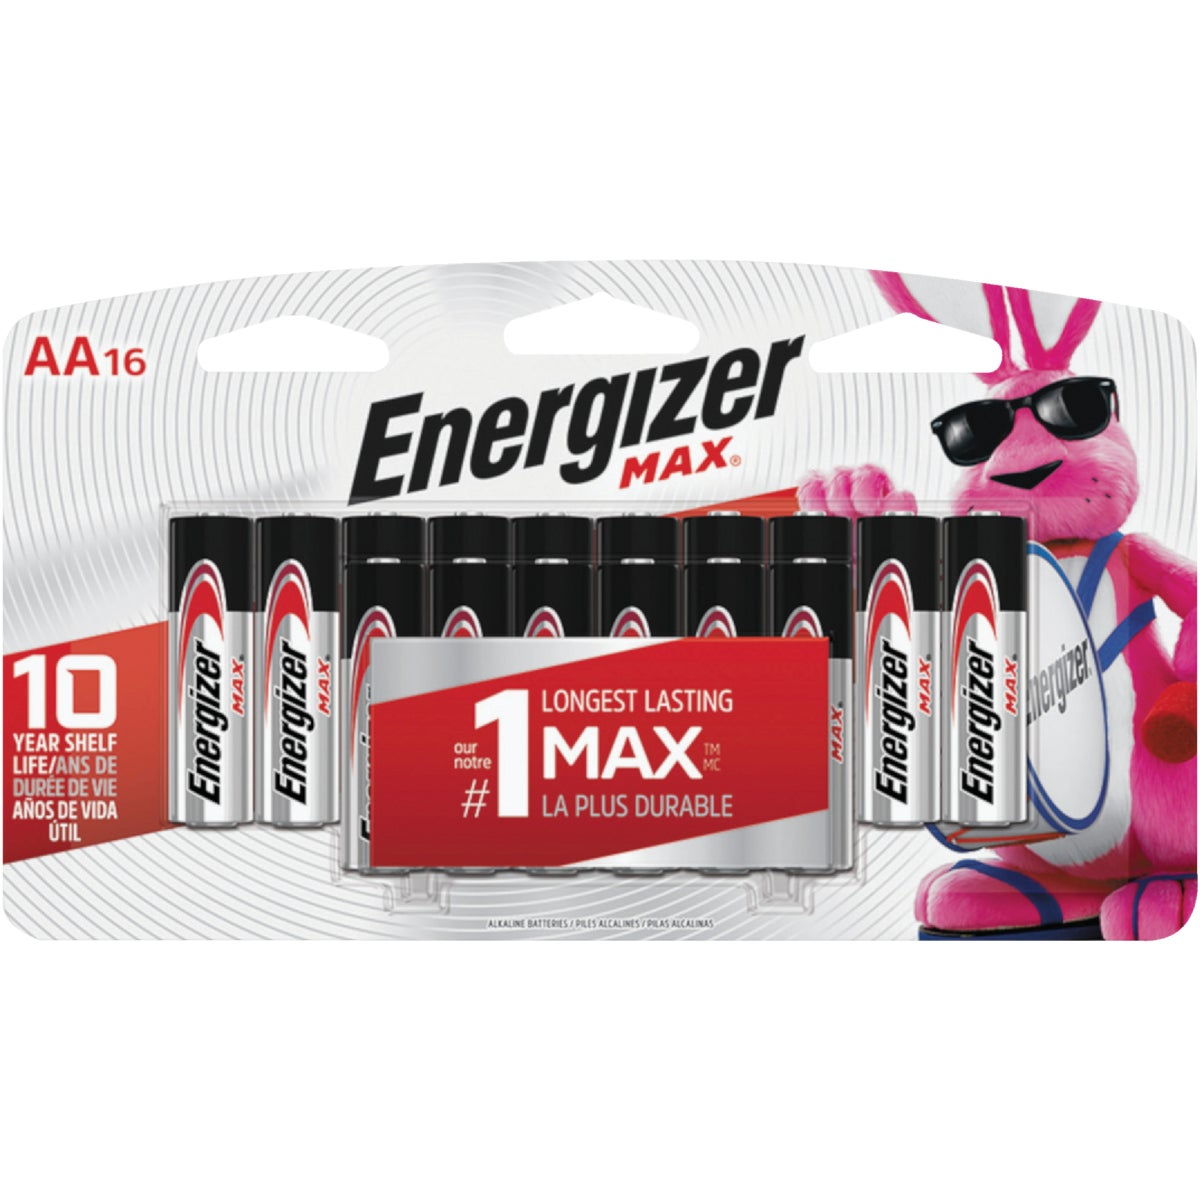 16PK AA ALKALINE BATTERY - E91LP-16 by Energizer